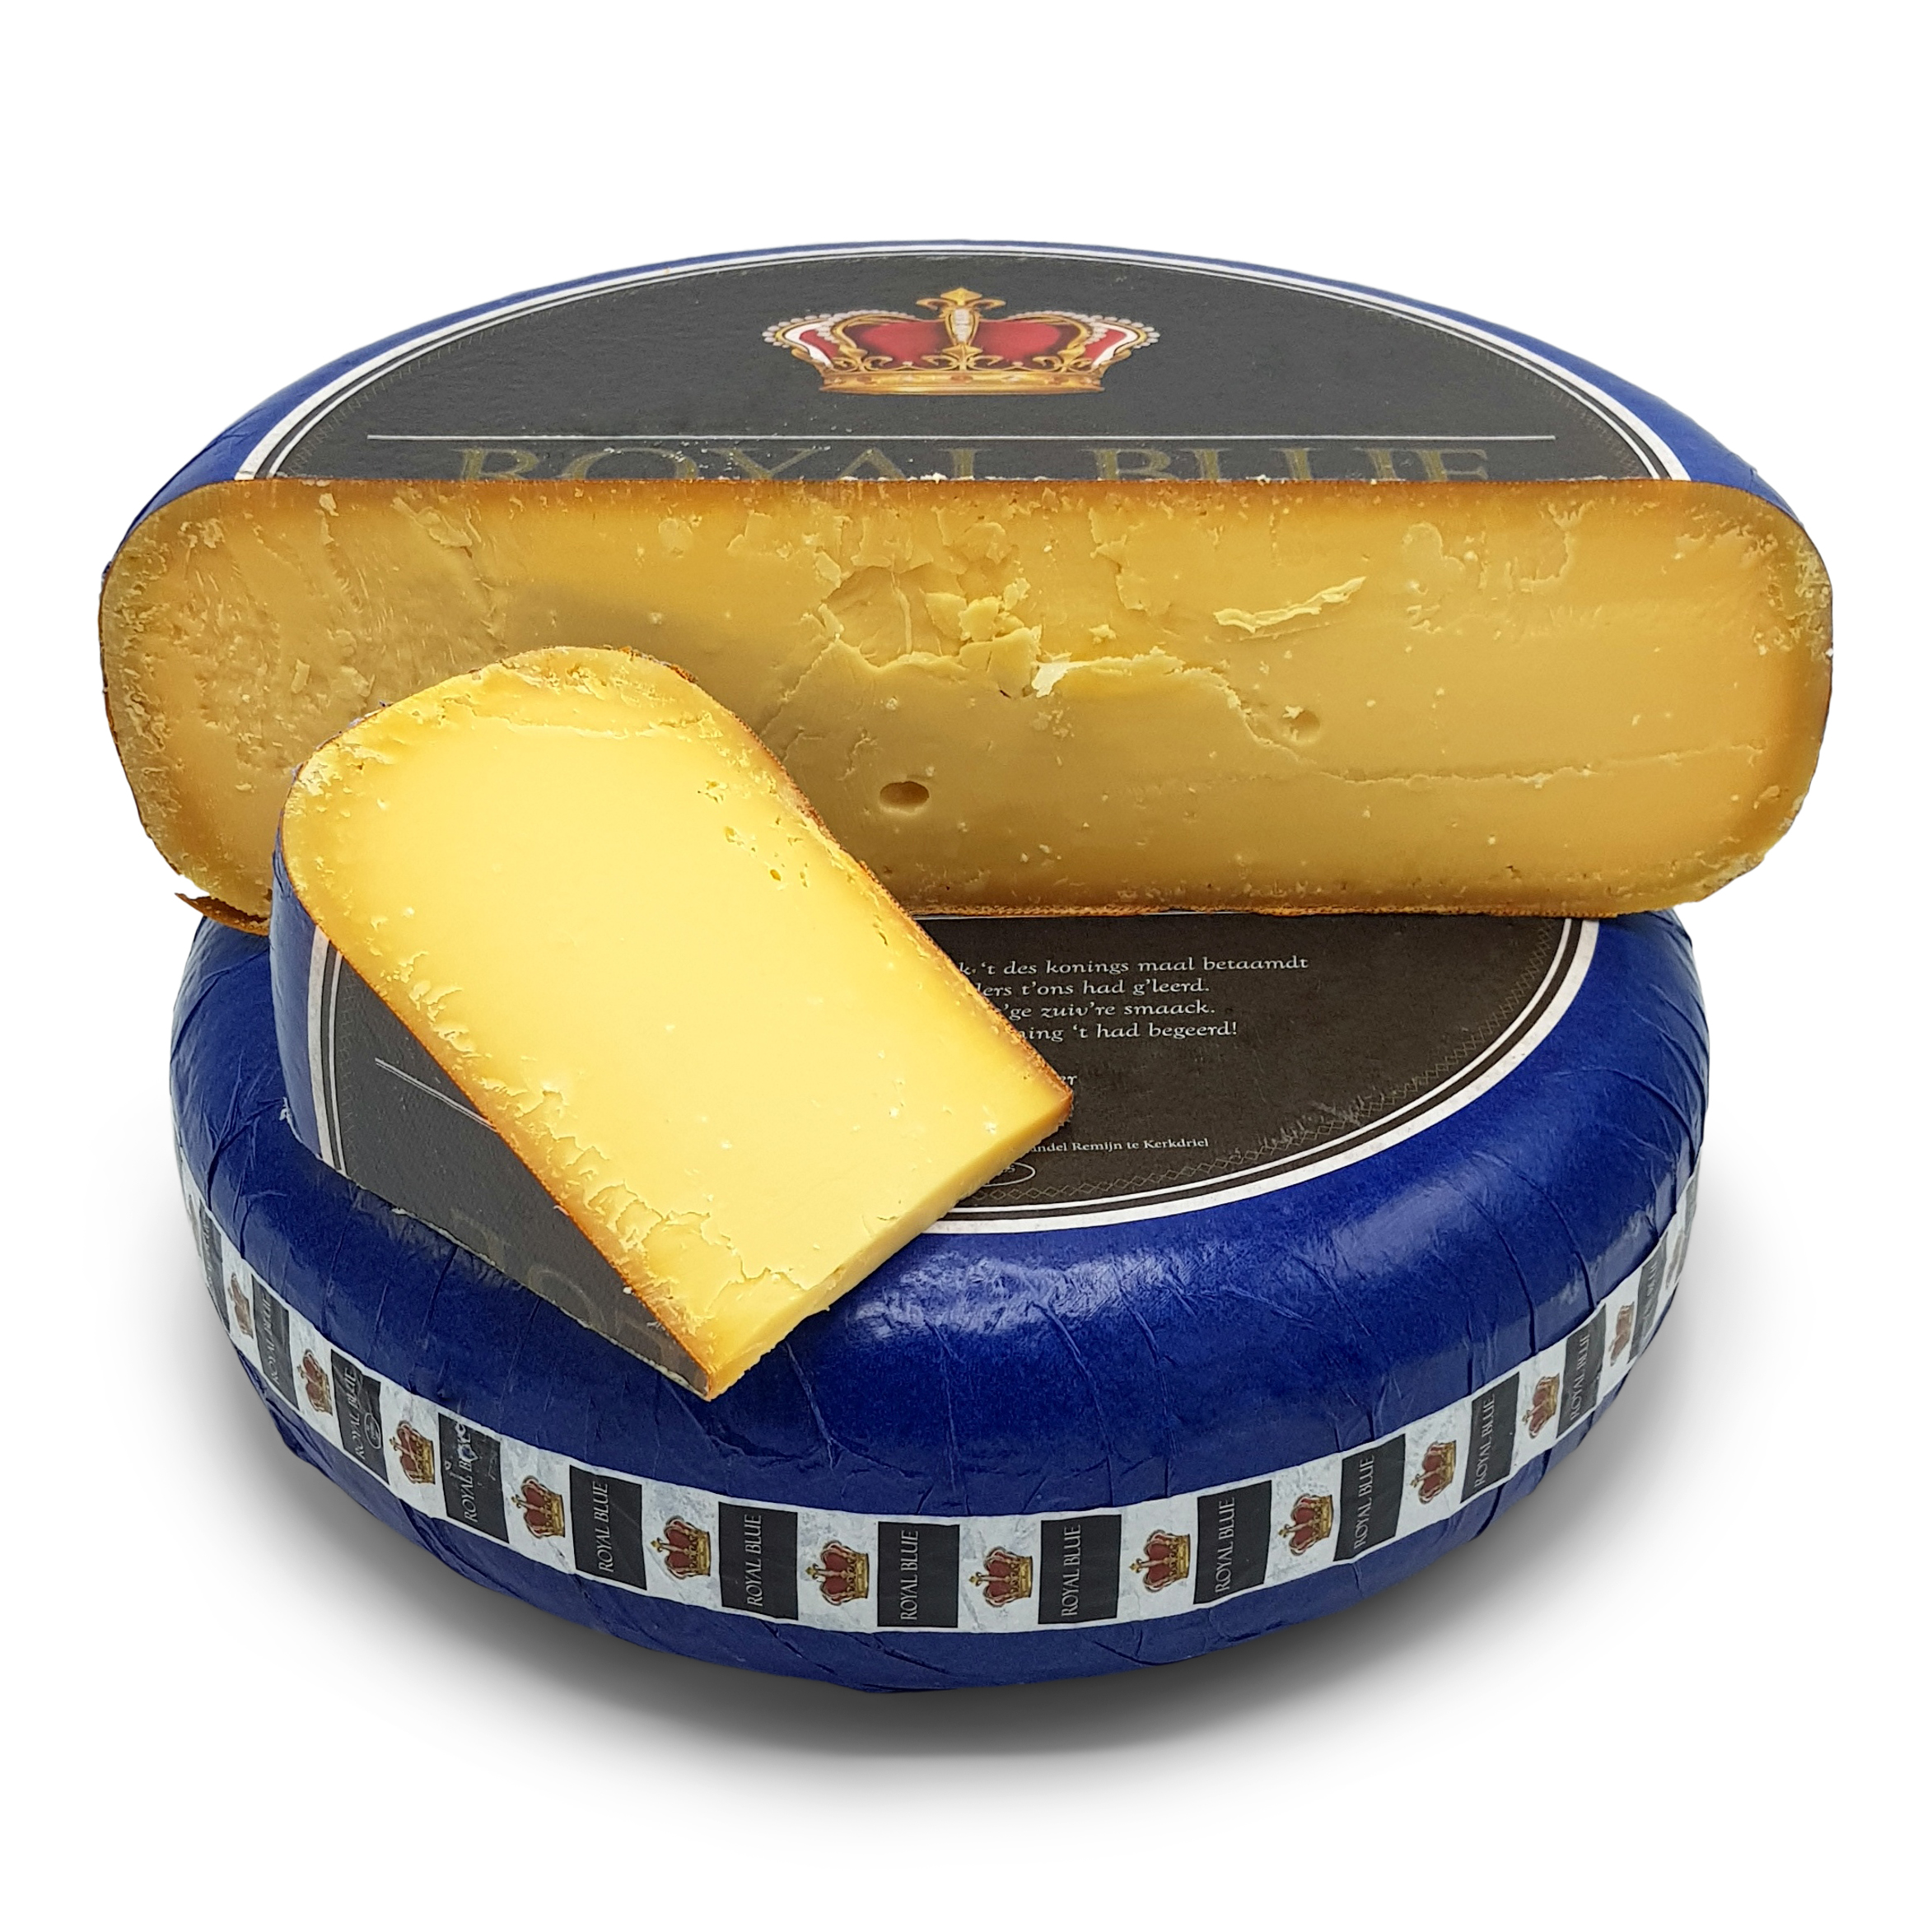 Old cheese (aged +/- 1 to 2 years)